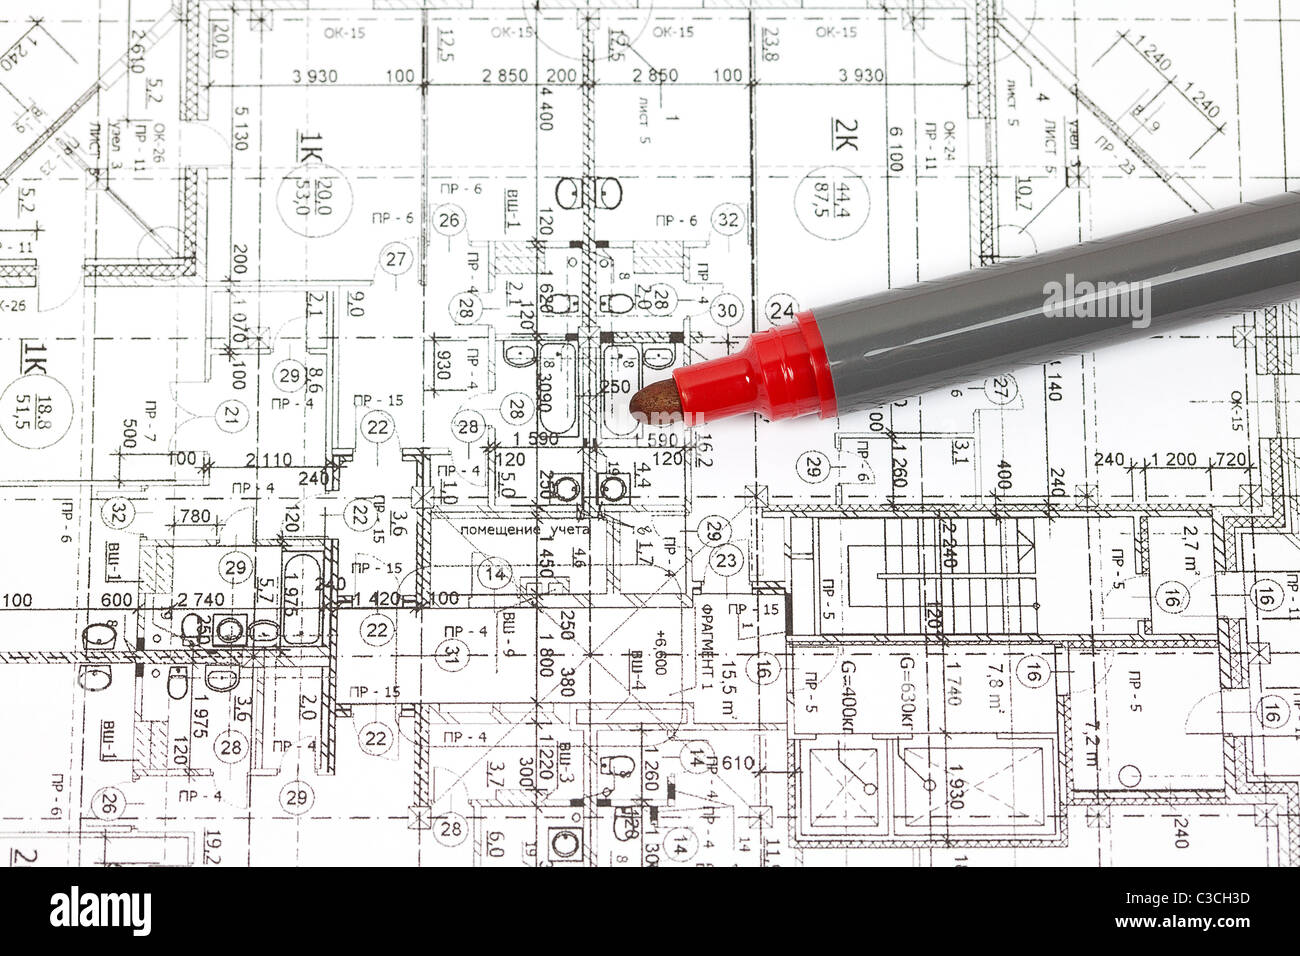 Schematic Drawings Stock Photos Images Architectural And Diagram Background Of The A Marker Image